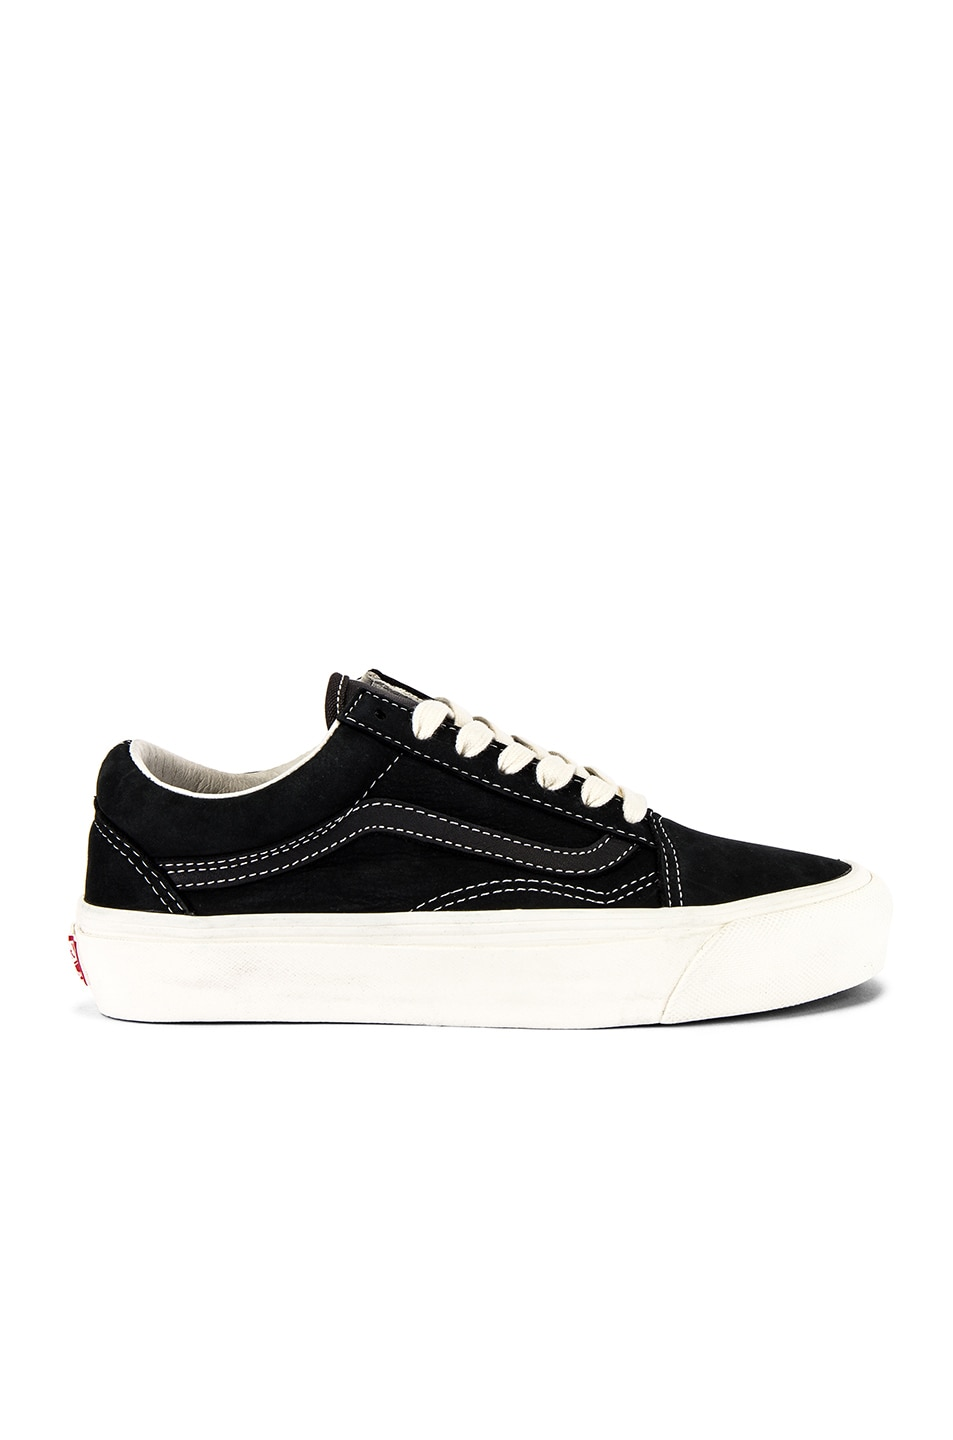 Image 1 of Vans Vault OG Old Skool LX in Raven & Black